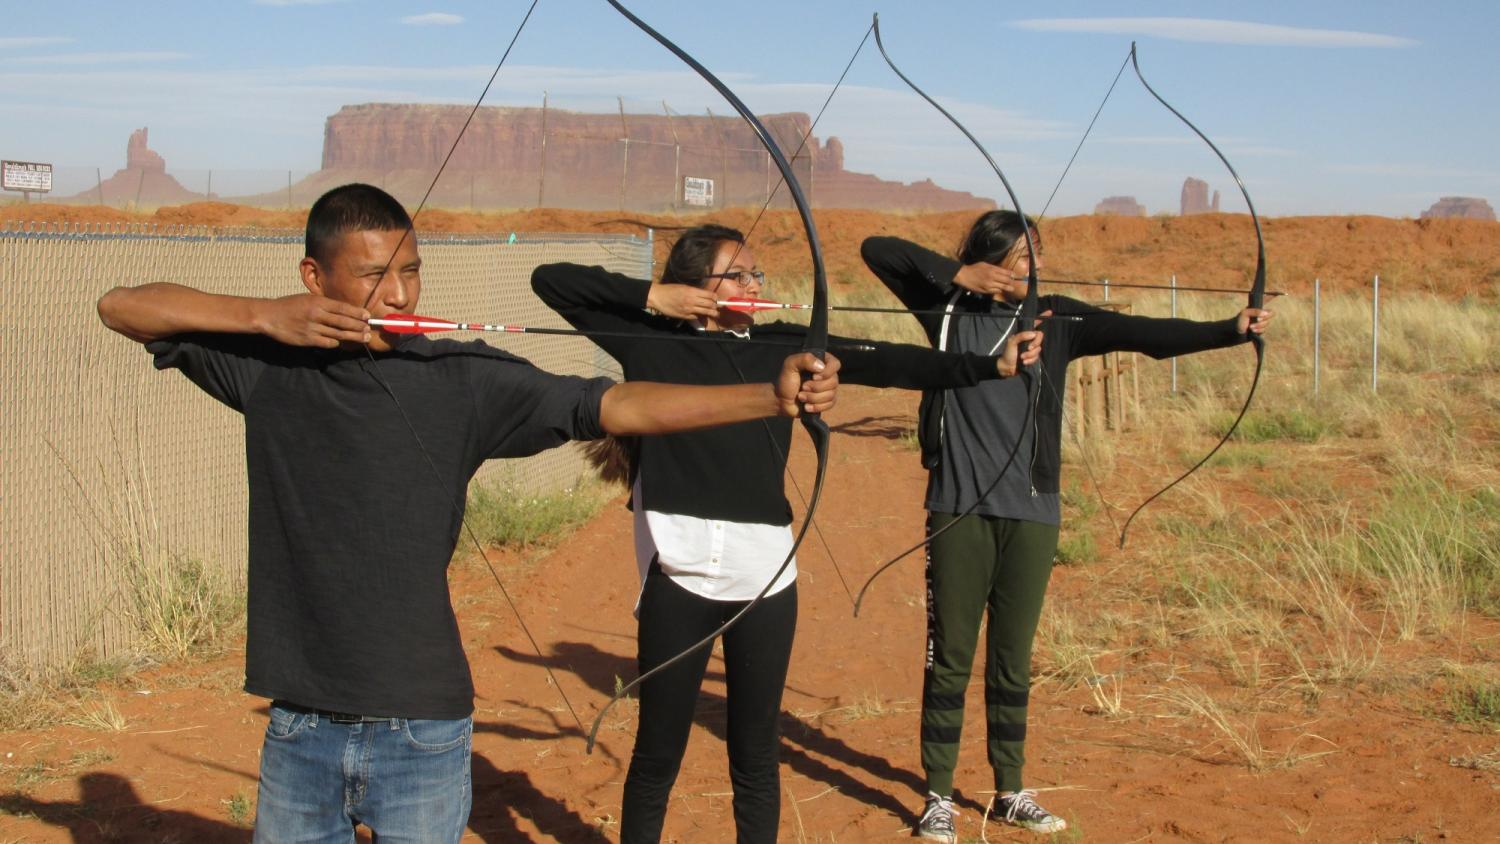 Members of the MVHS Archery Club test their skills at a recent club meeting. The club members are, from left to right, Michael John, Kimberlyn Yellowhair and Karrilyn Yellowhair, (Photo by Tiffany Durham).